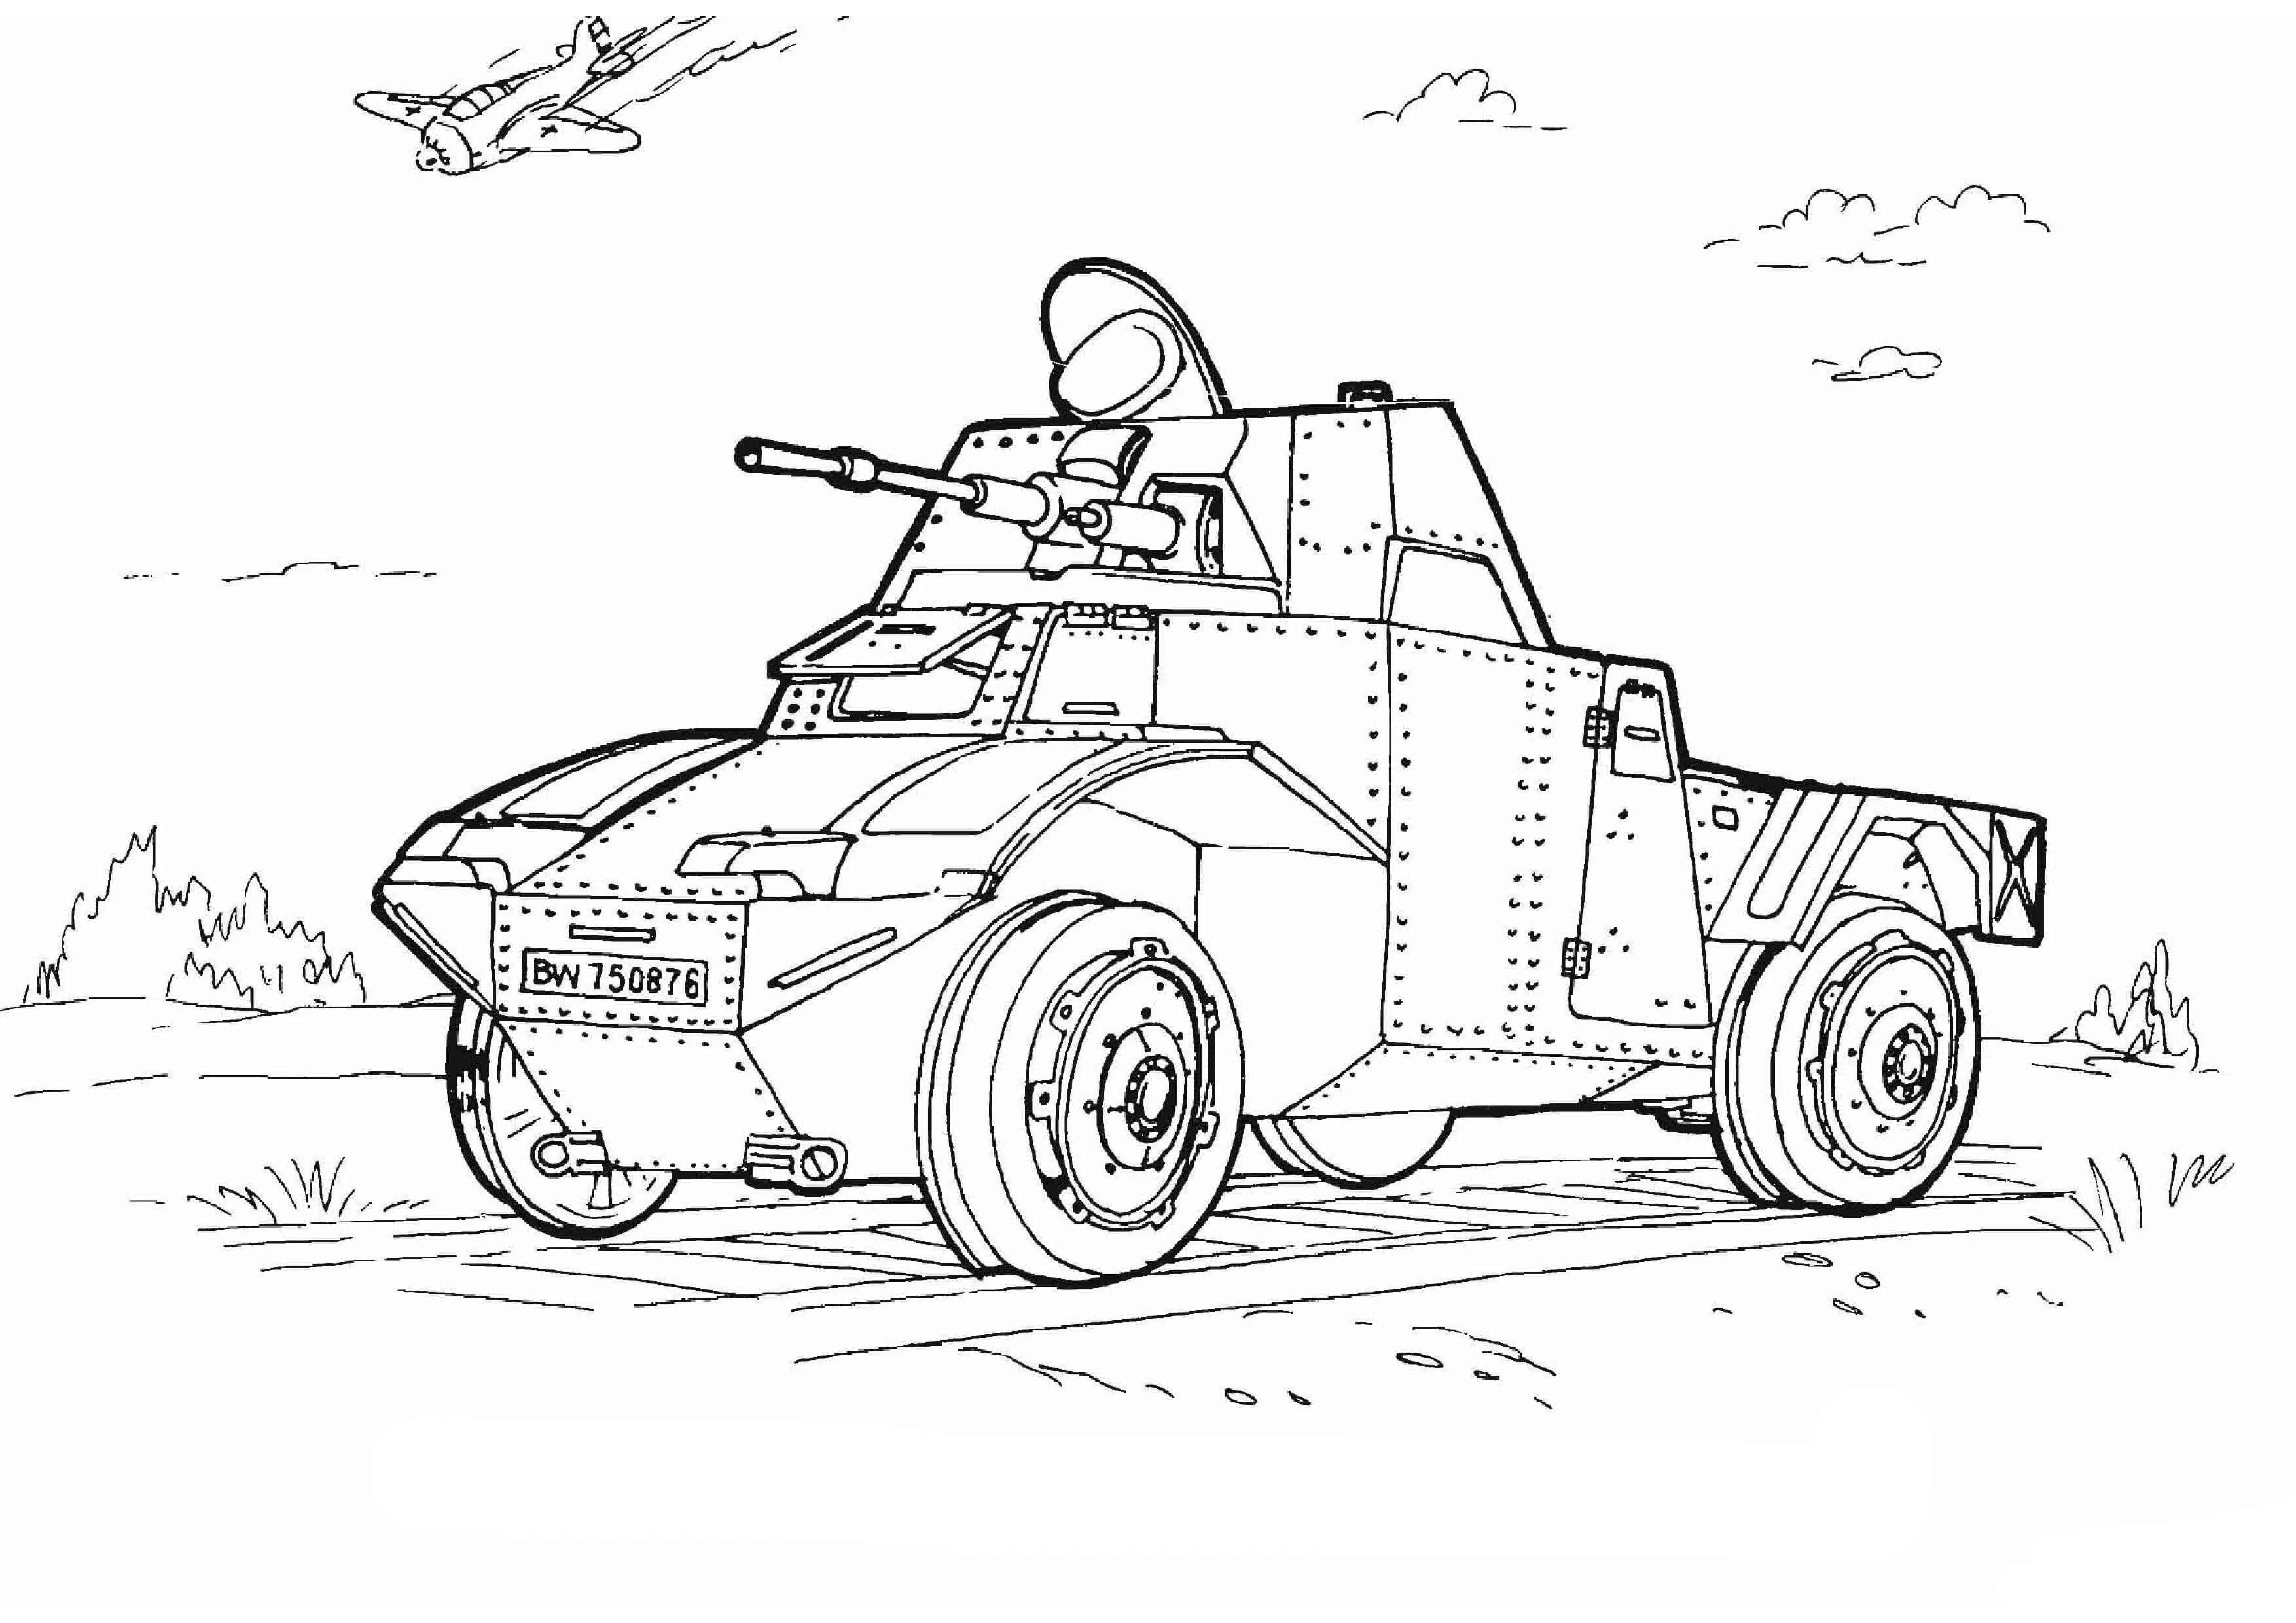 free printable army coloring pages army coloring pages soldier at getdrawings free download printable free coloring army pages